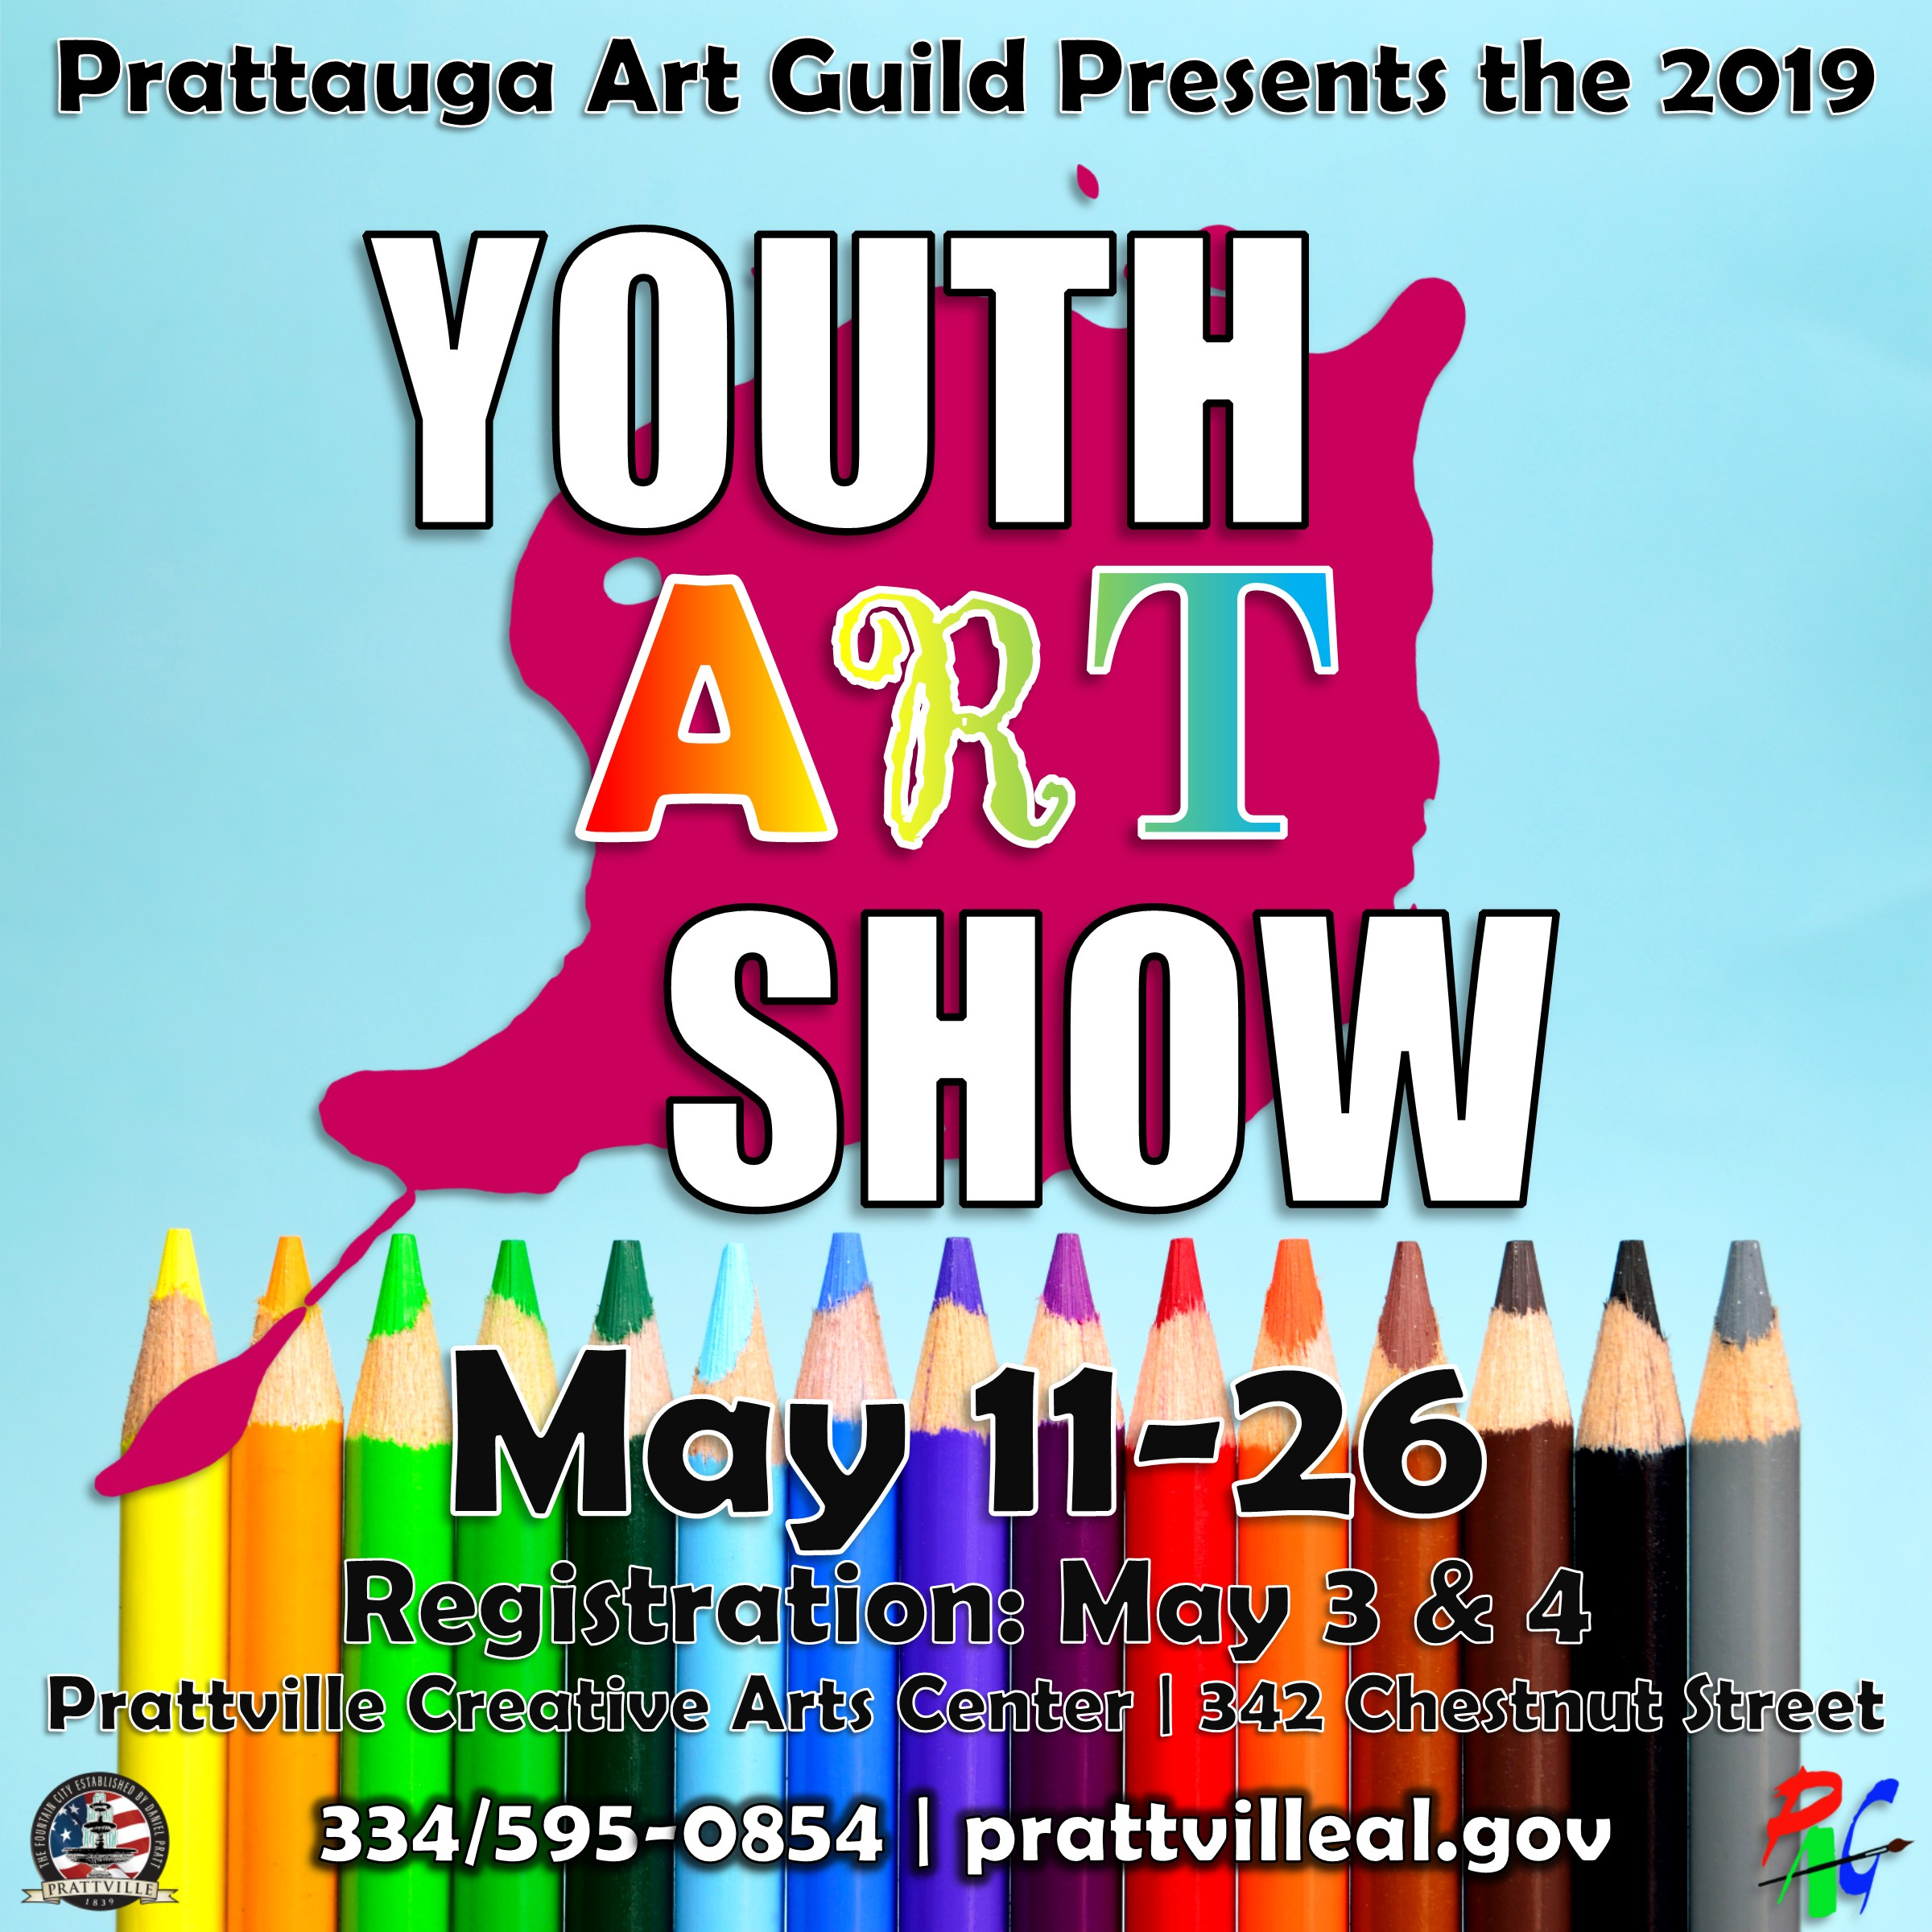 th Annual Youth Art Show in Prattville